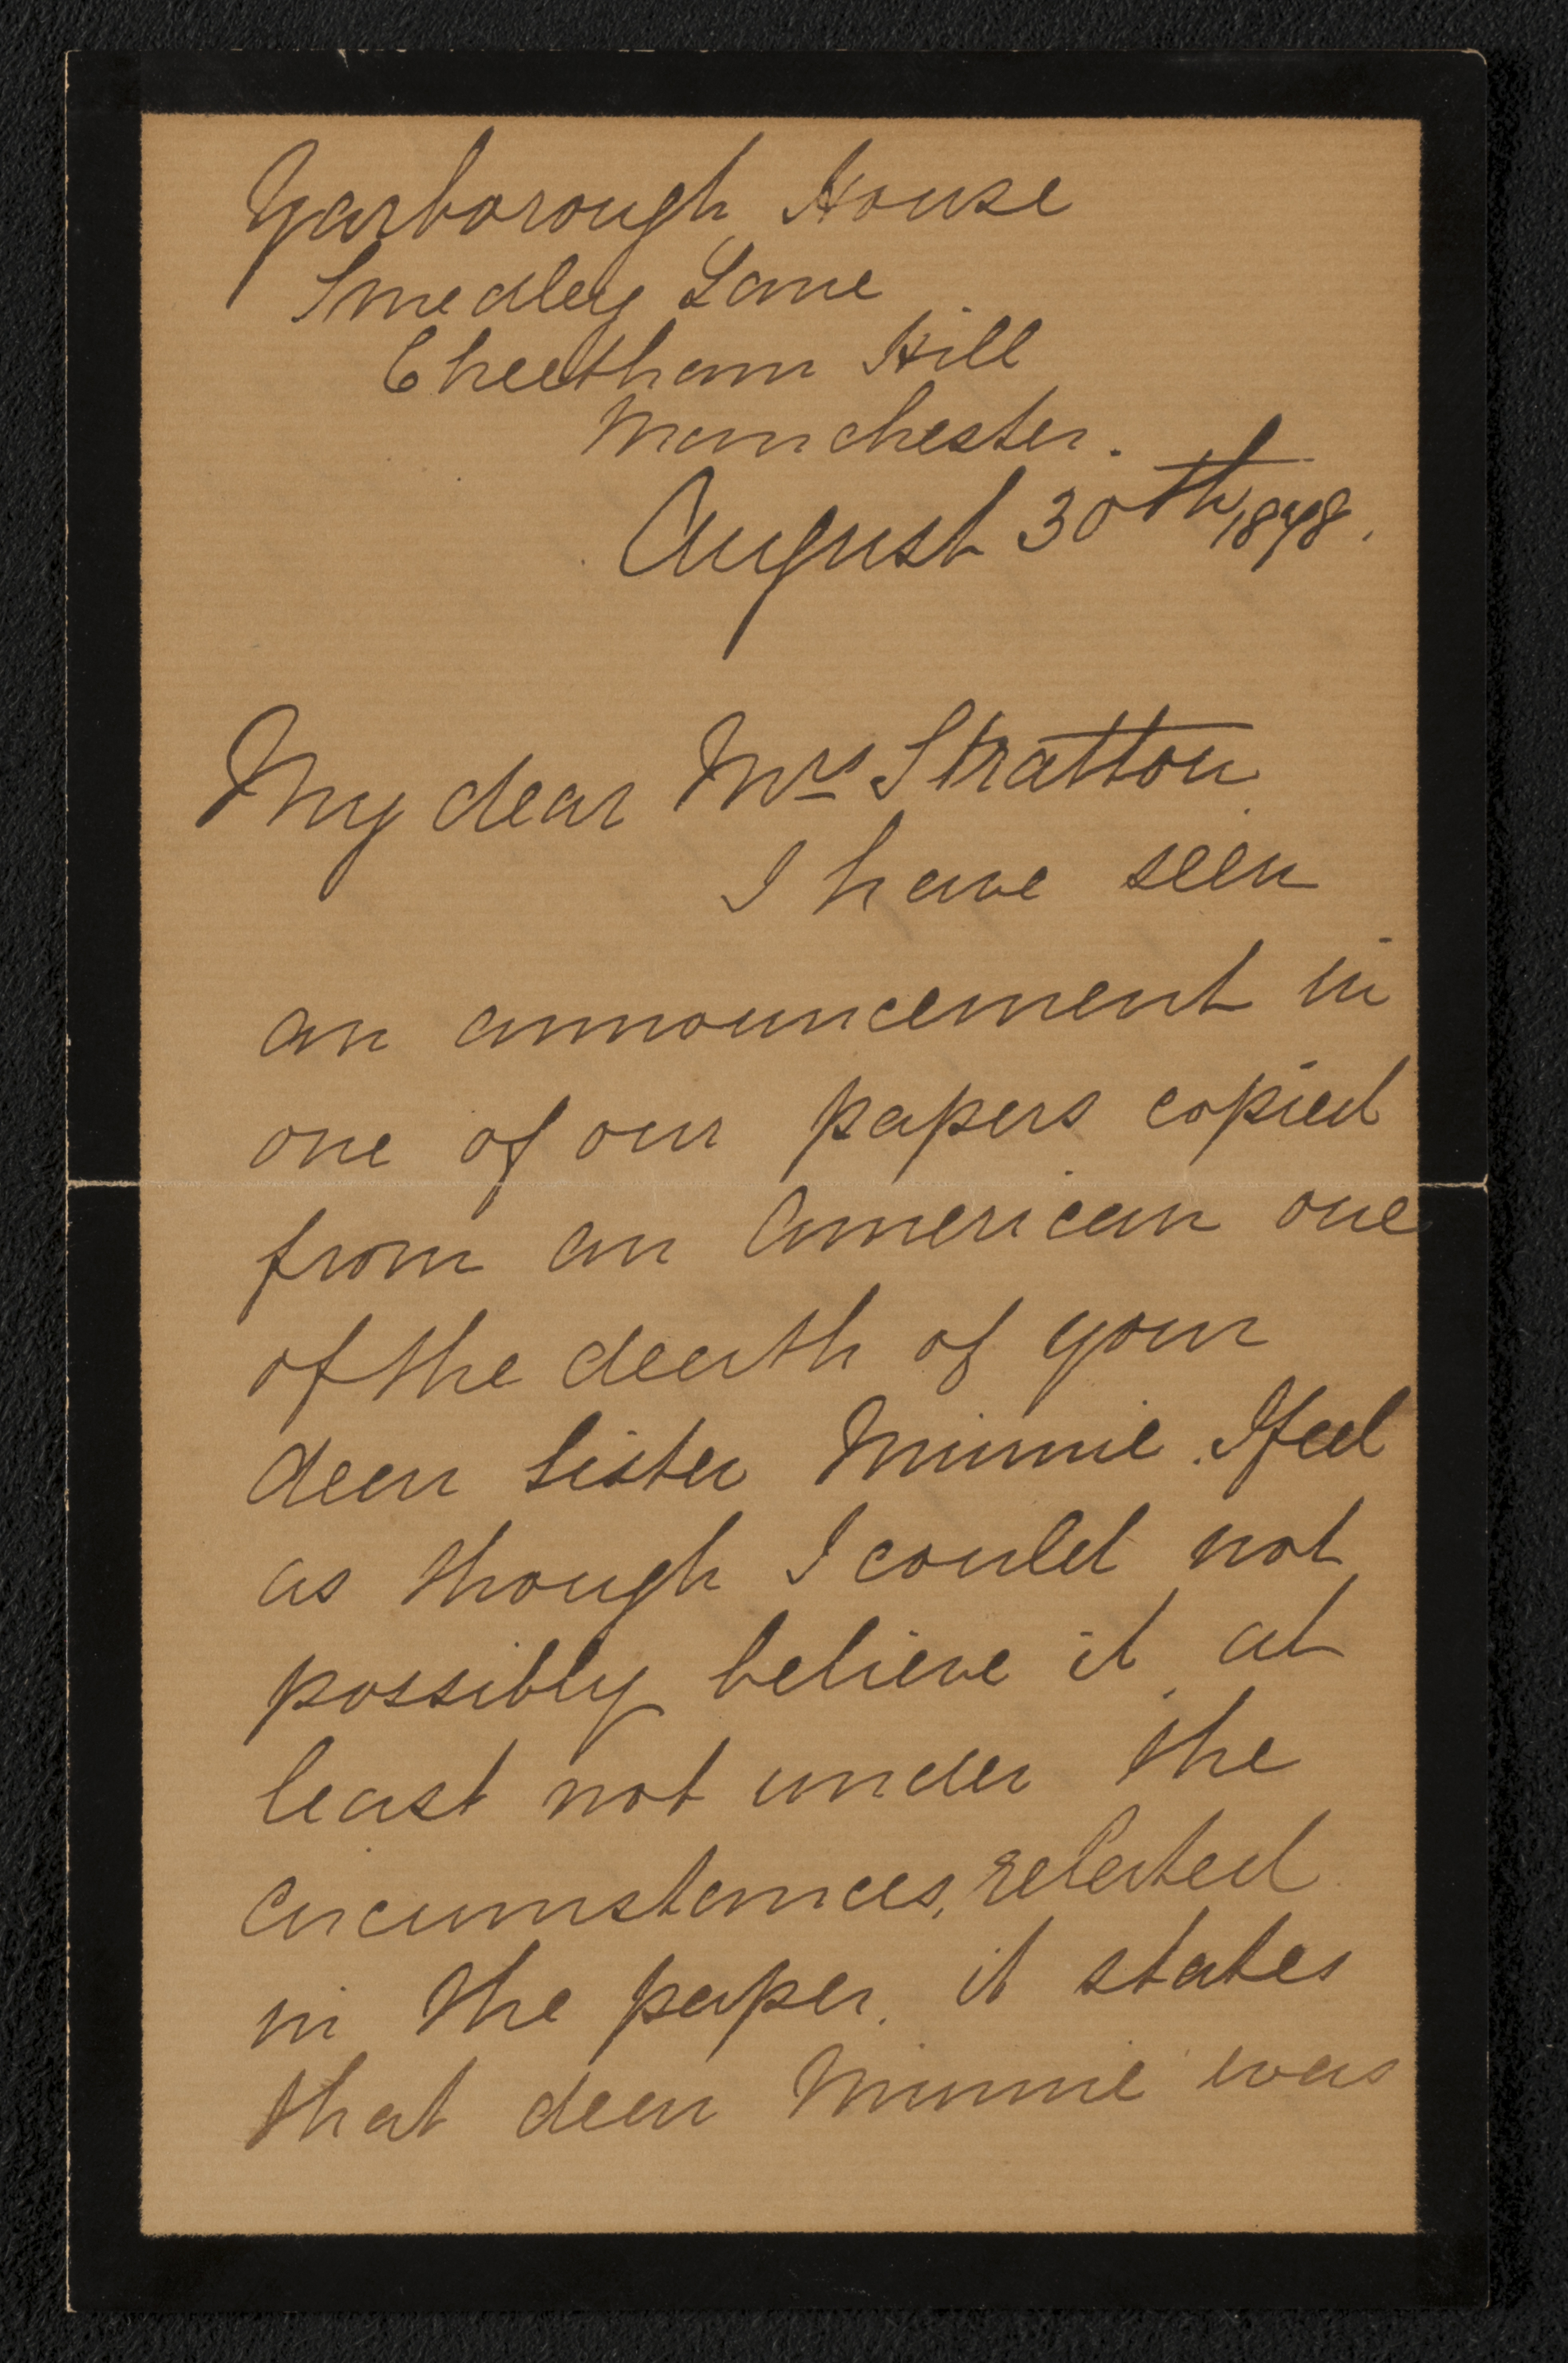 Letter: My dear Mrs. Stratton (M. Lavinia Warren) from E. Collier, August  30, 1878 (page 1) ...